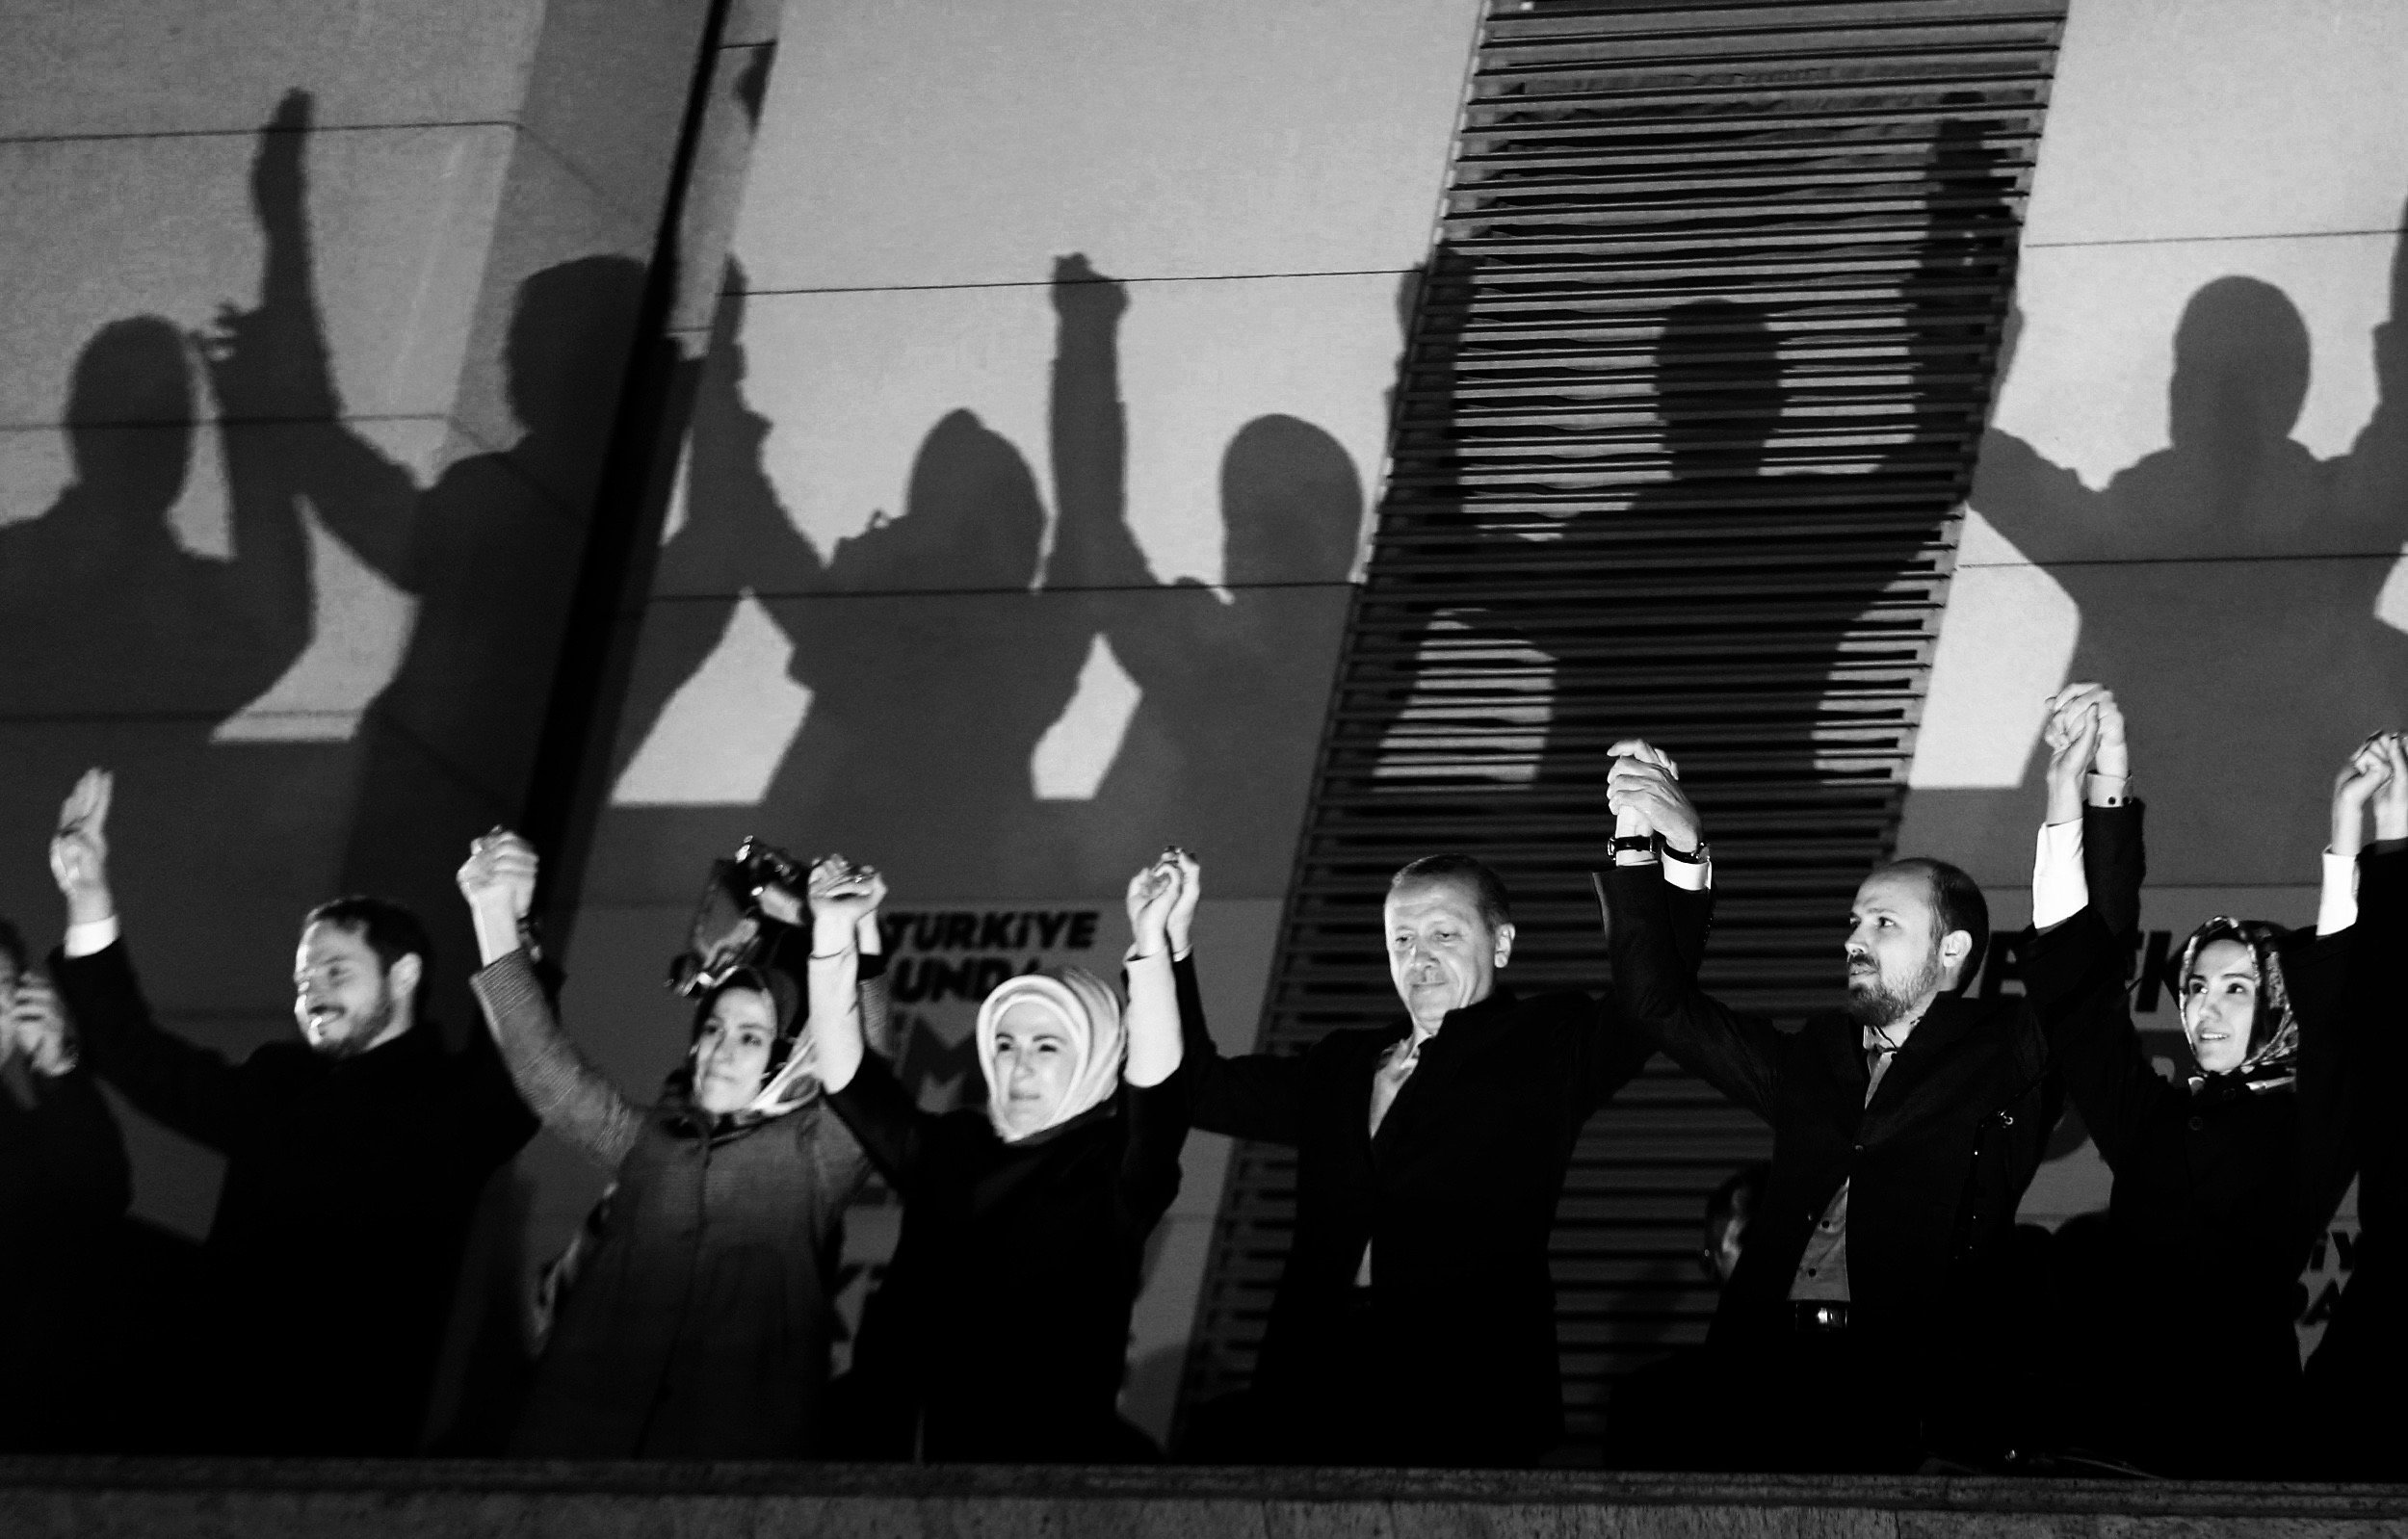 "Turkey's Prime Minister Tayyip Erdogan (3rd R) greets his supporters with his family members in Ankara March 31, 2014. Tayyip Erdogan's ruling AKP party appeared on Sunday to be heading for a clear victory in local polls that have become a referendum on a prime minister facing corruption scandals and security leaks he blames on ""traitors"" embedded in state bodies. Erdogan's family members from L to R are his son-in-law Berat Albayrak, his daughter Esra Erdogan Albayrak, his wife Emine, his son Bilal and his daughter Sumeyye. REUTERS/Umit Bektas (TURKEY - Tags: POLITICS ELECTIONS TPX IMAGES OF THE DAY)"